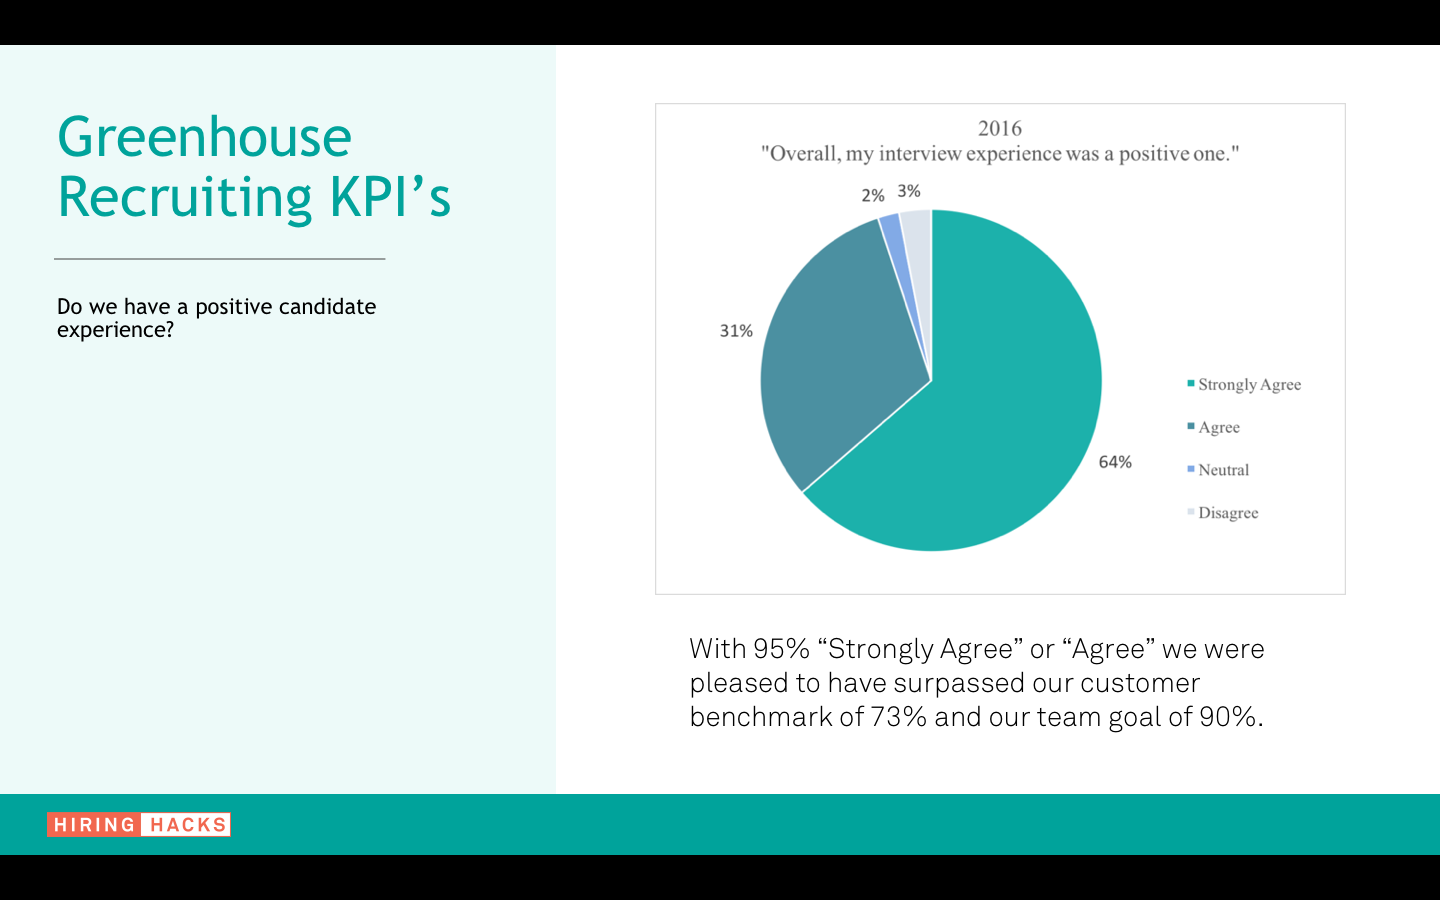 Sample graph of Greenhouse Recruiting KPIs